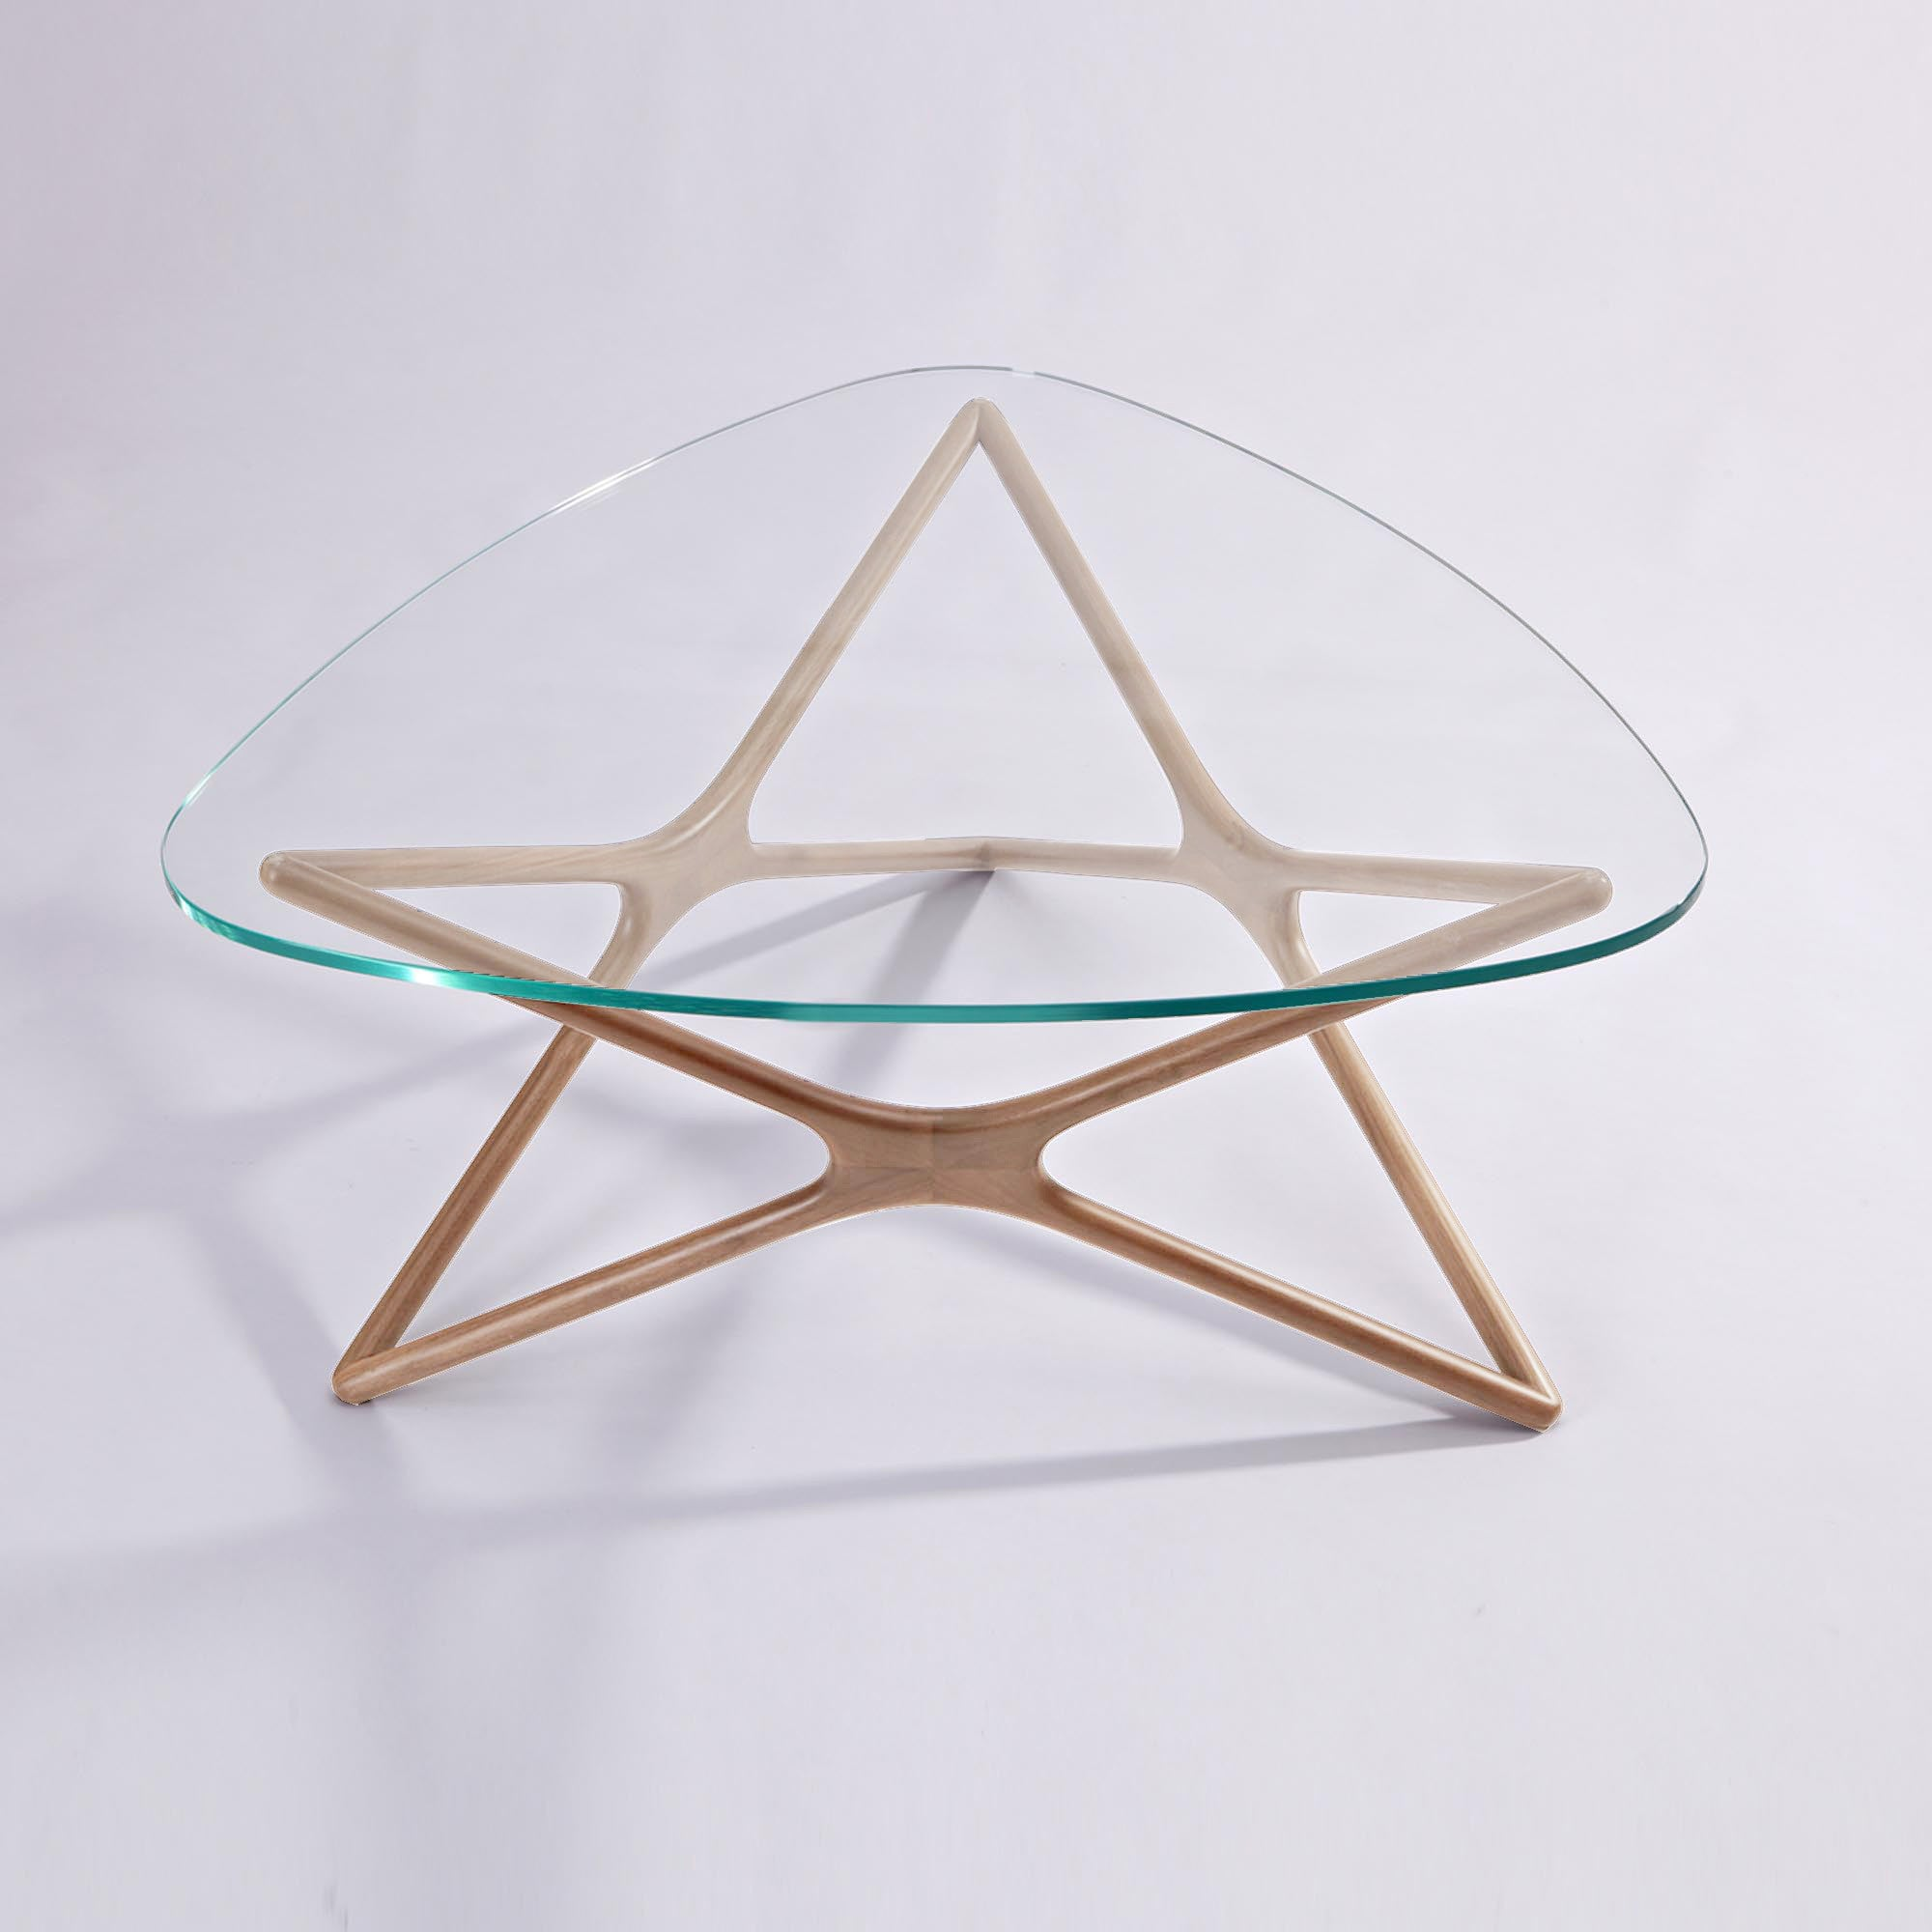 Star coffee Table  SMC16215E/B-N -  طاولة قهوة ستار - Shop Online Furniture and Home Decor Store in Dubai, UAE at ebarza